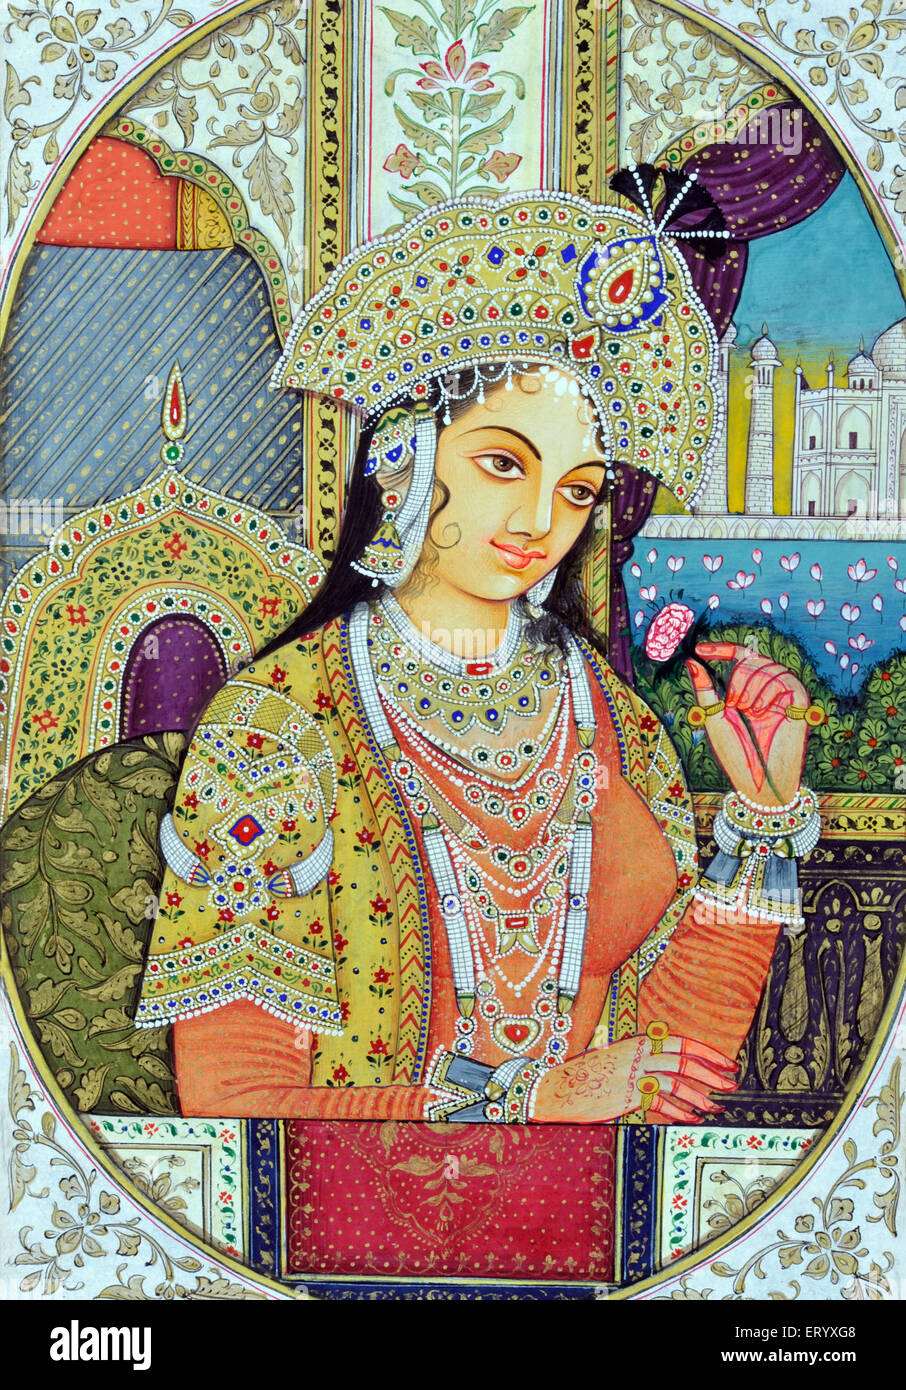 Miniature Painting of Mughul Queen Mumtaz India Asia - Stock Image